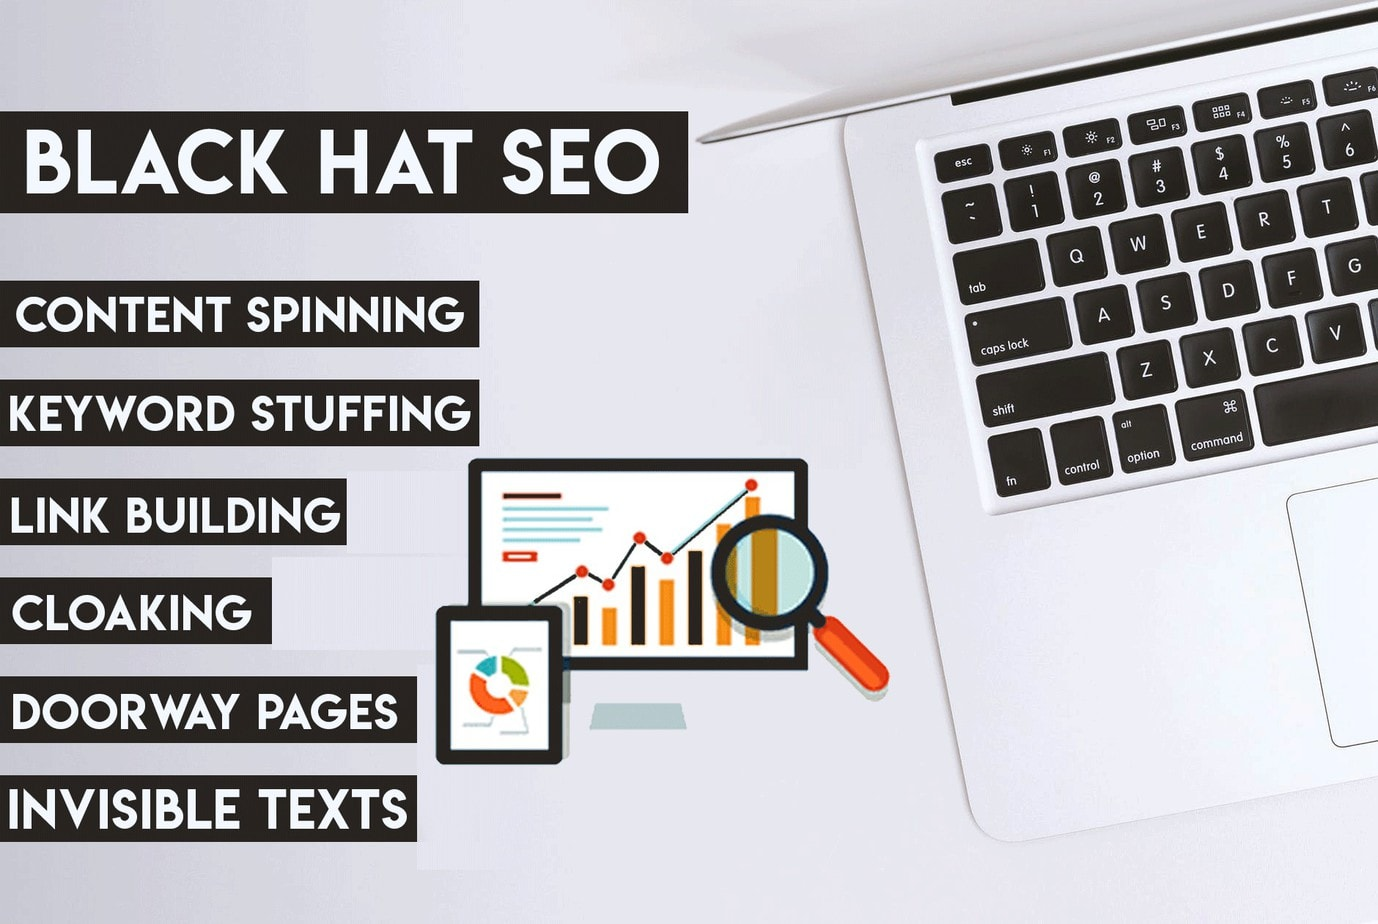 5 Practical Black Hat SEO Techniques For 2020